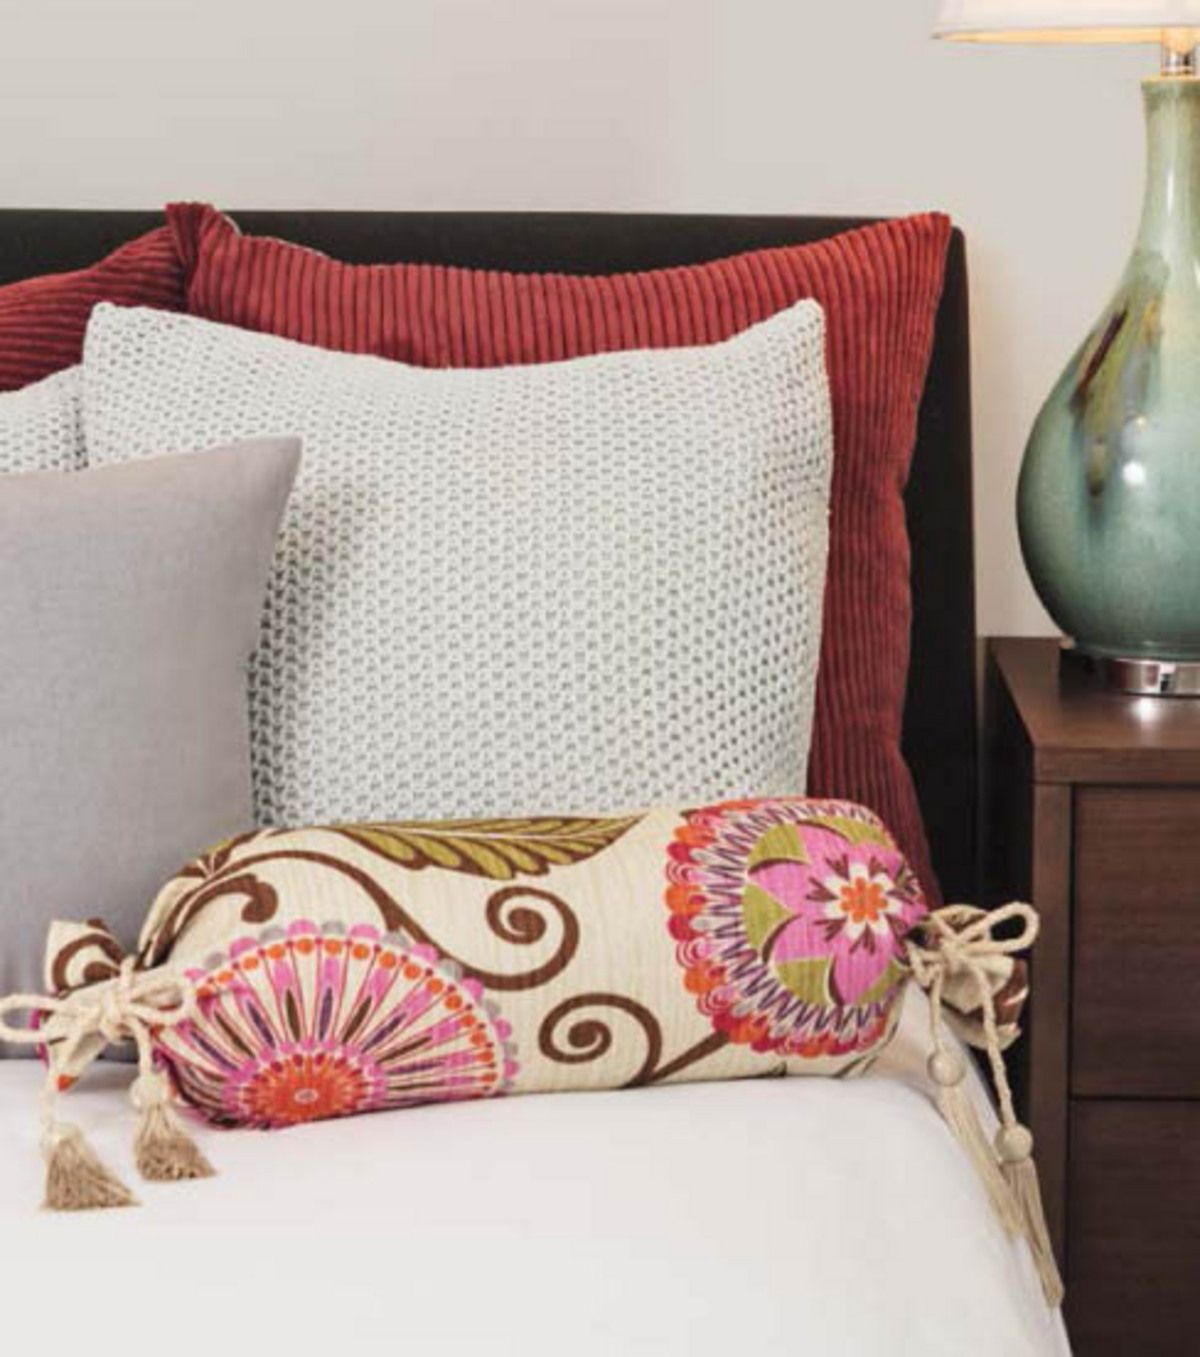 Tassels and a bold print ud a fun refresh to your home decor free